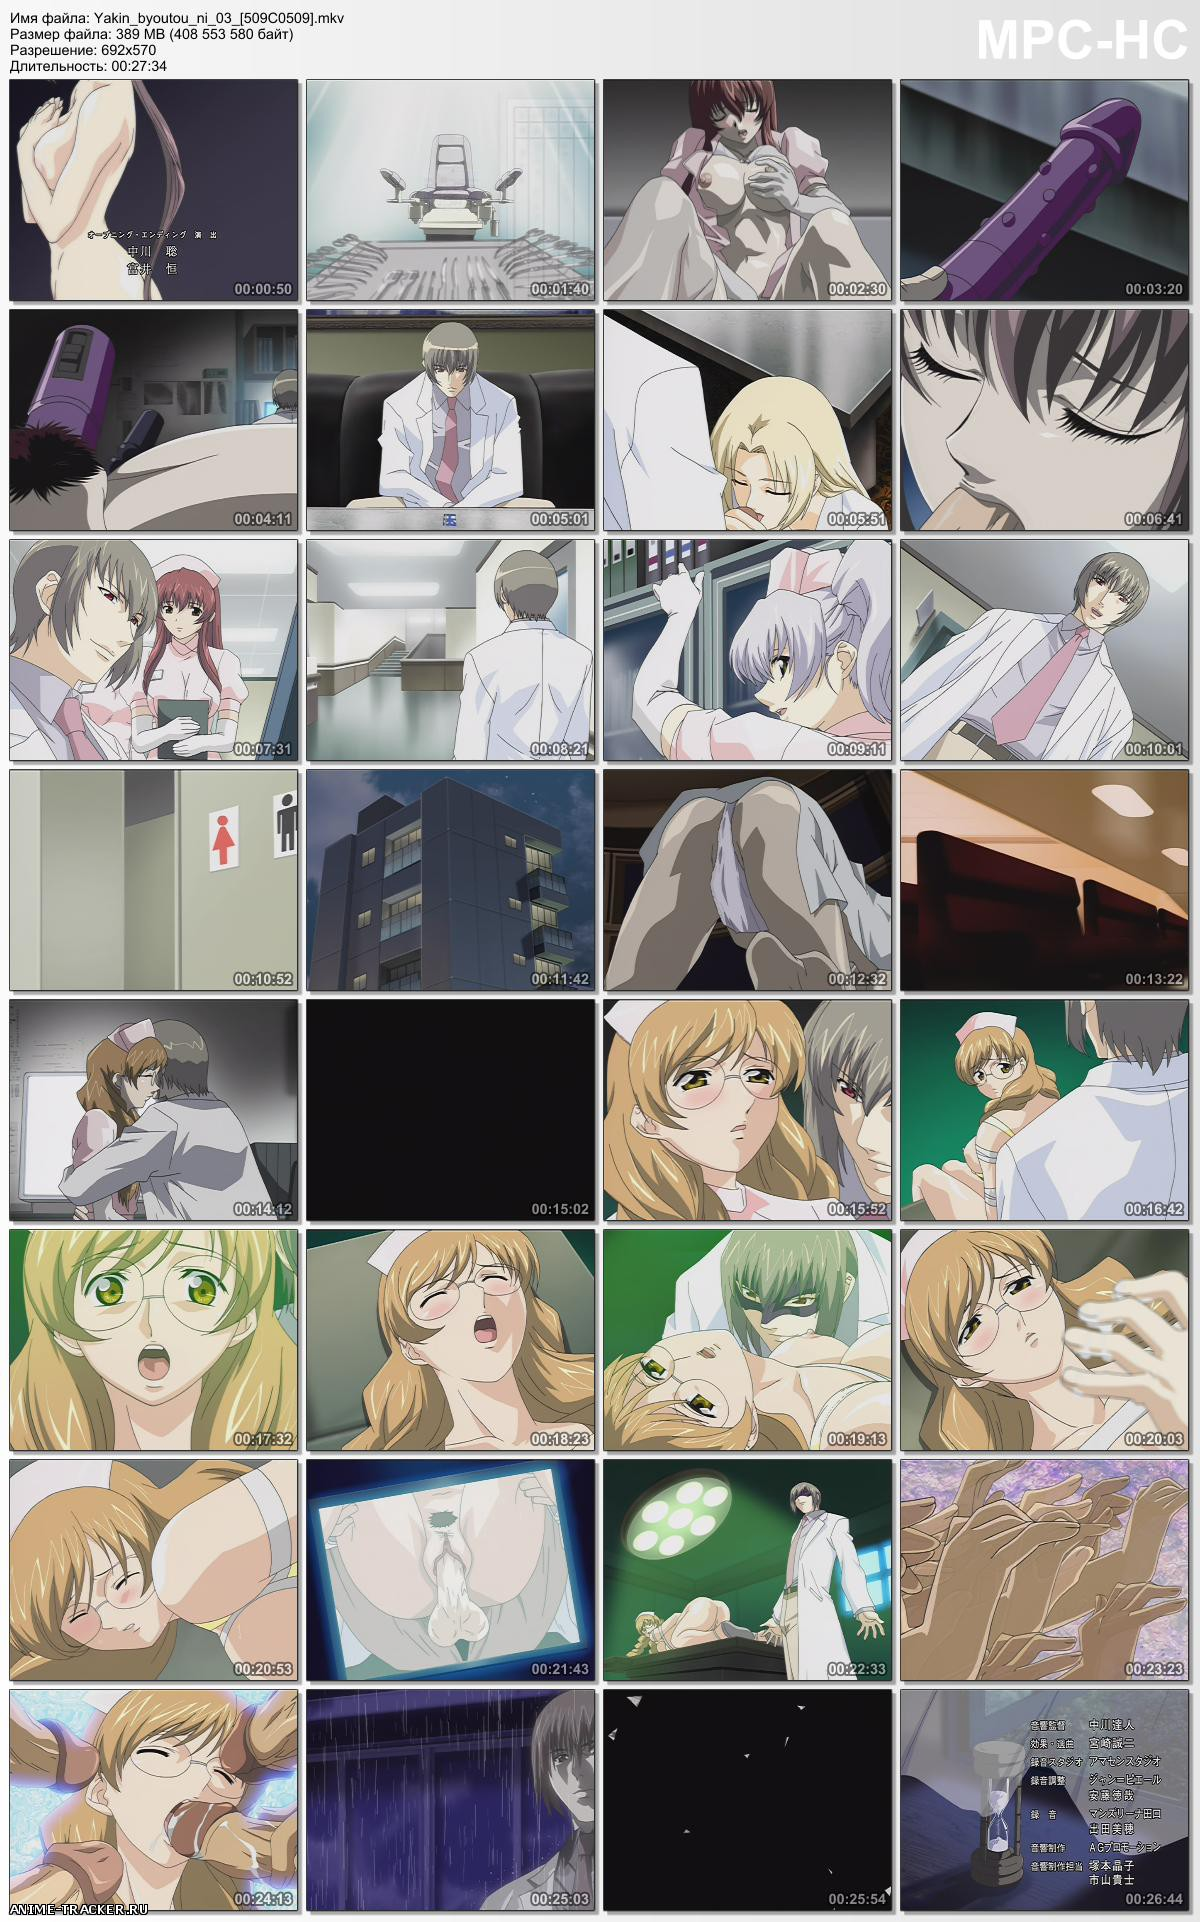 Night Shift Nurses / Yakin Byoutou / ��������� ������ ����� [complete collection] [JPN,ENG,RUS,Multi] Anime Hentai